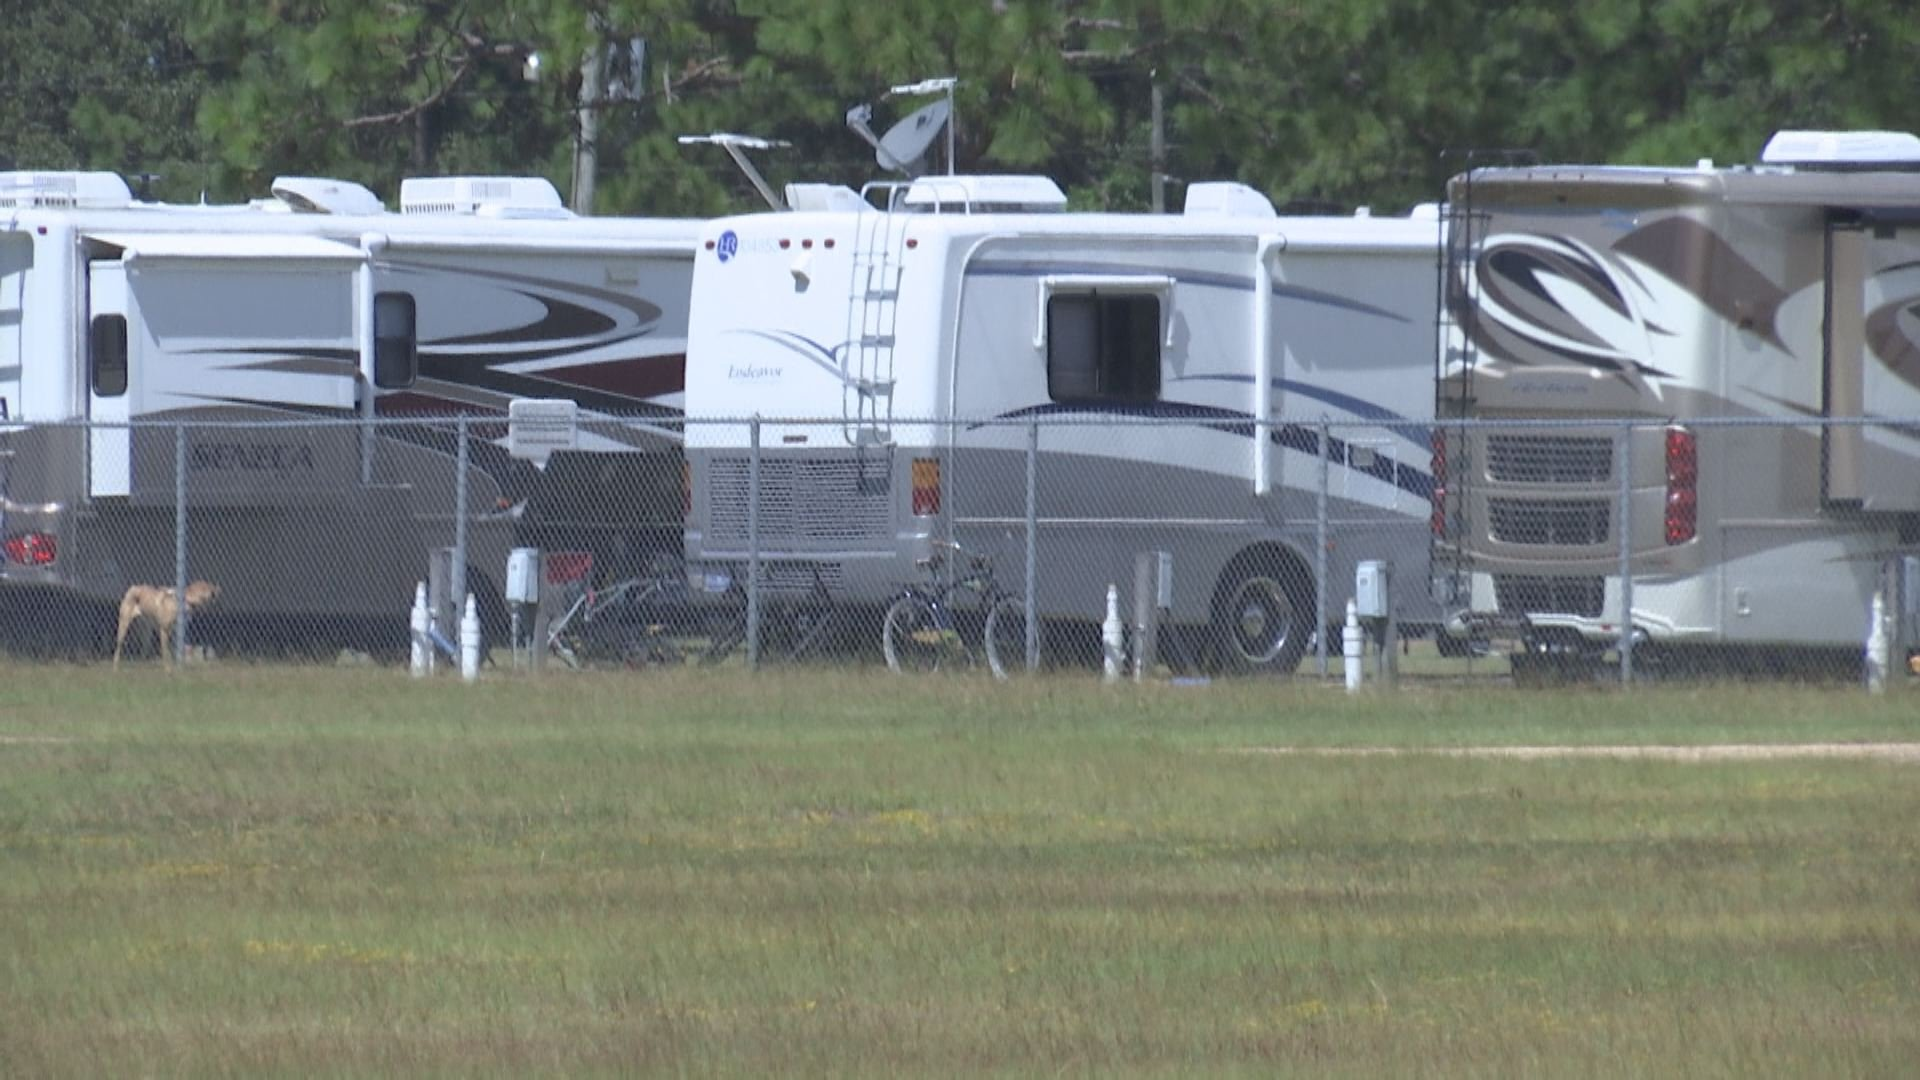 RVs belonging to Flordia evacuees are parked at The Grounds in west Mobile. (Kati Weis, WALA FOX10 News)